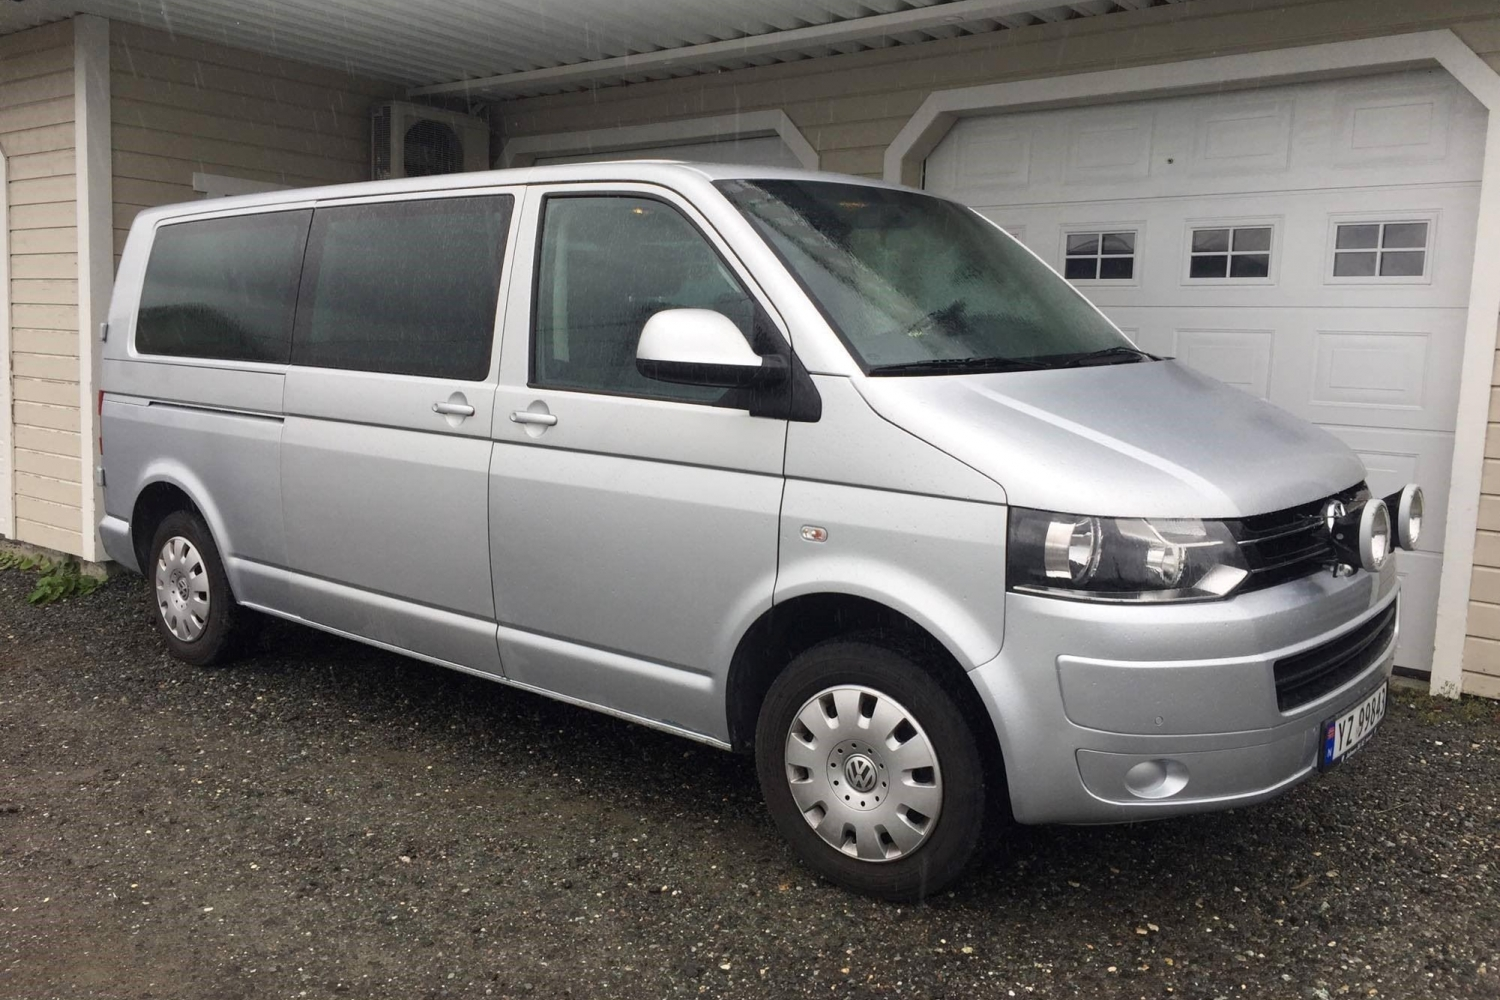 The mini van